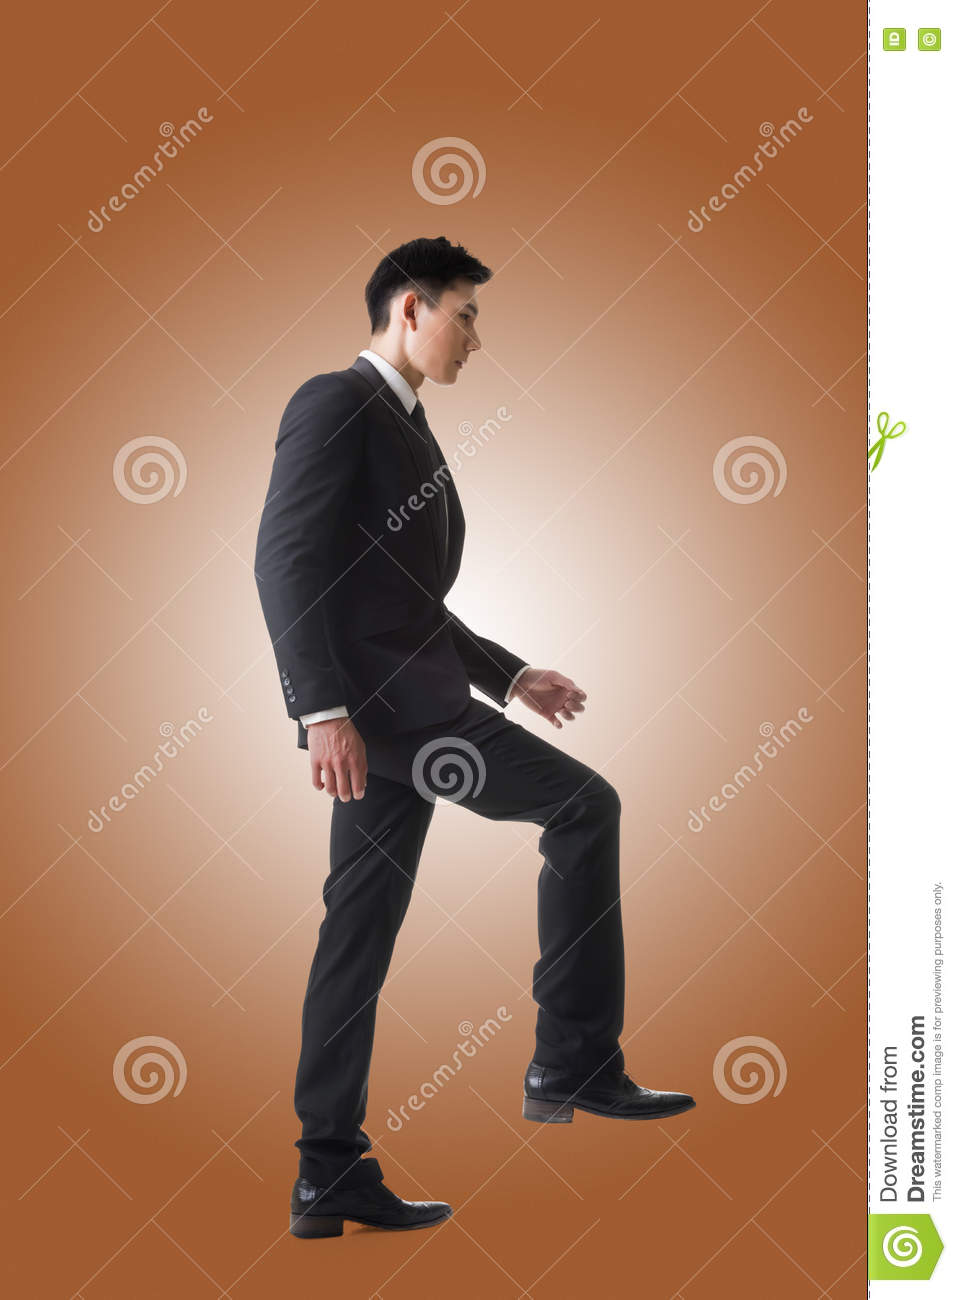 Businessman walking up on stairs